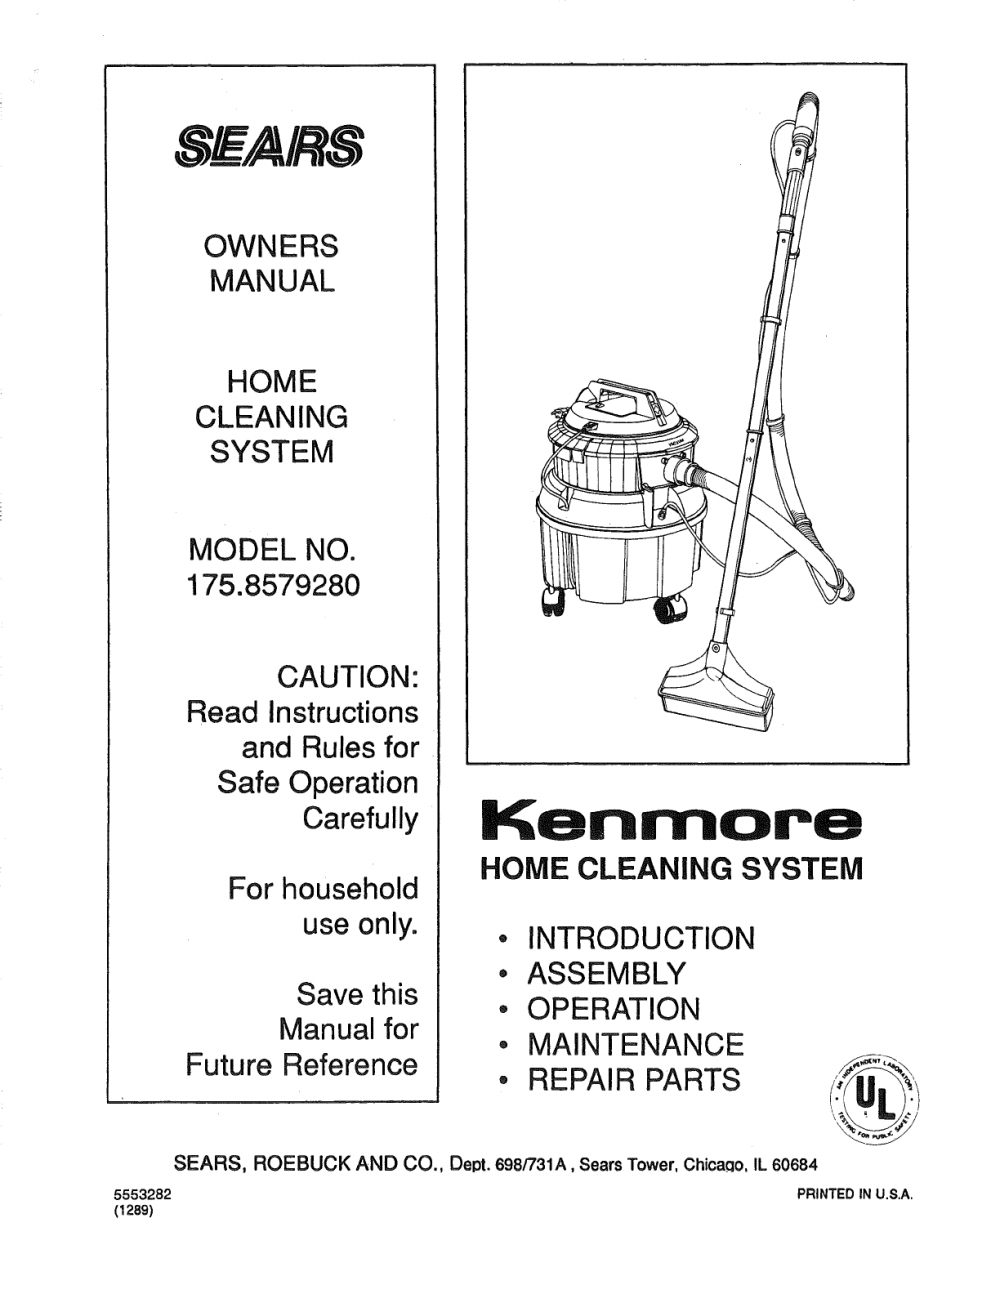 medium resolution of kenmore 1758579280 user manual home cleaning system manuals and guides l0812147